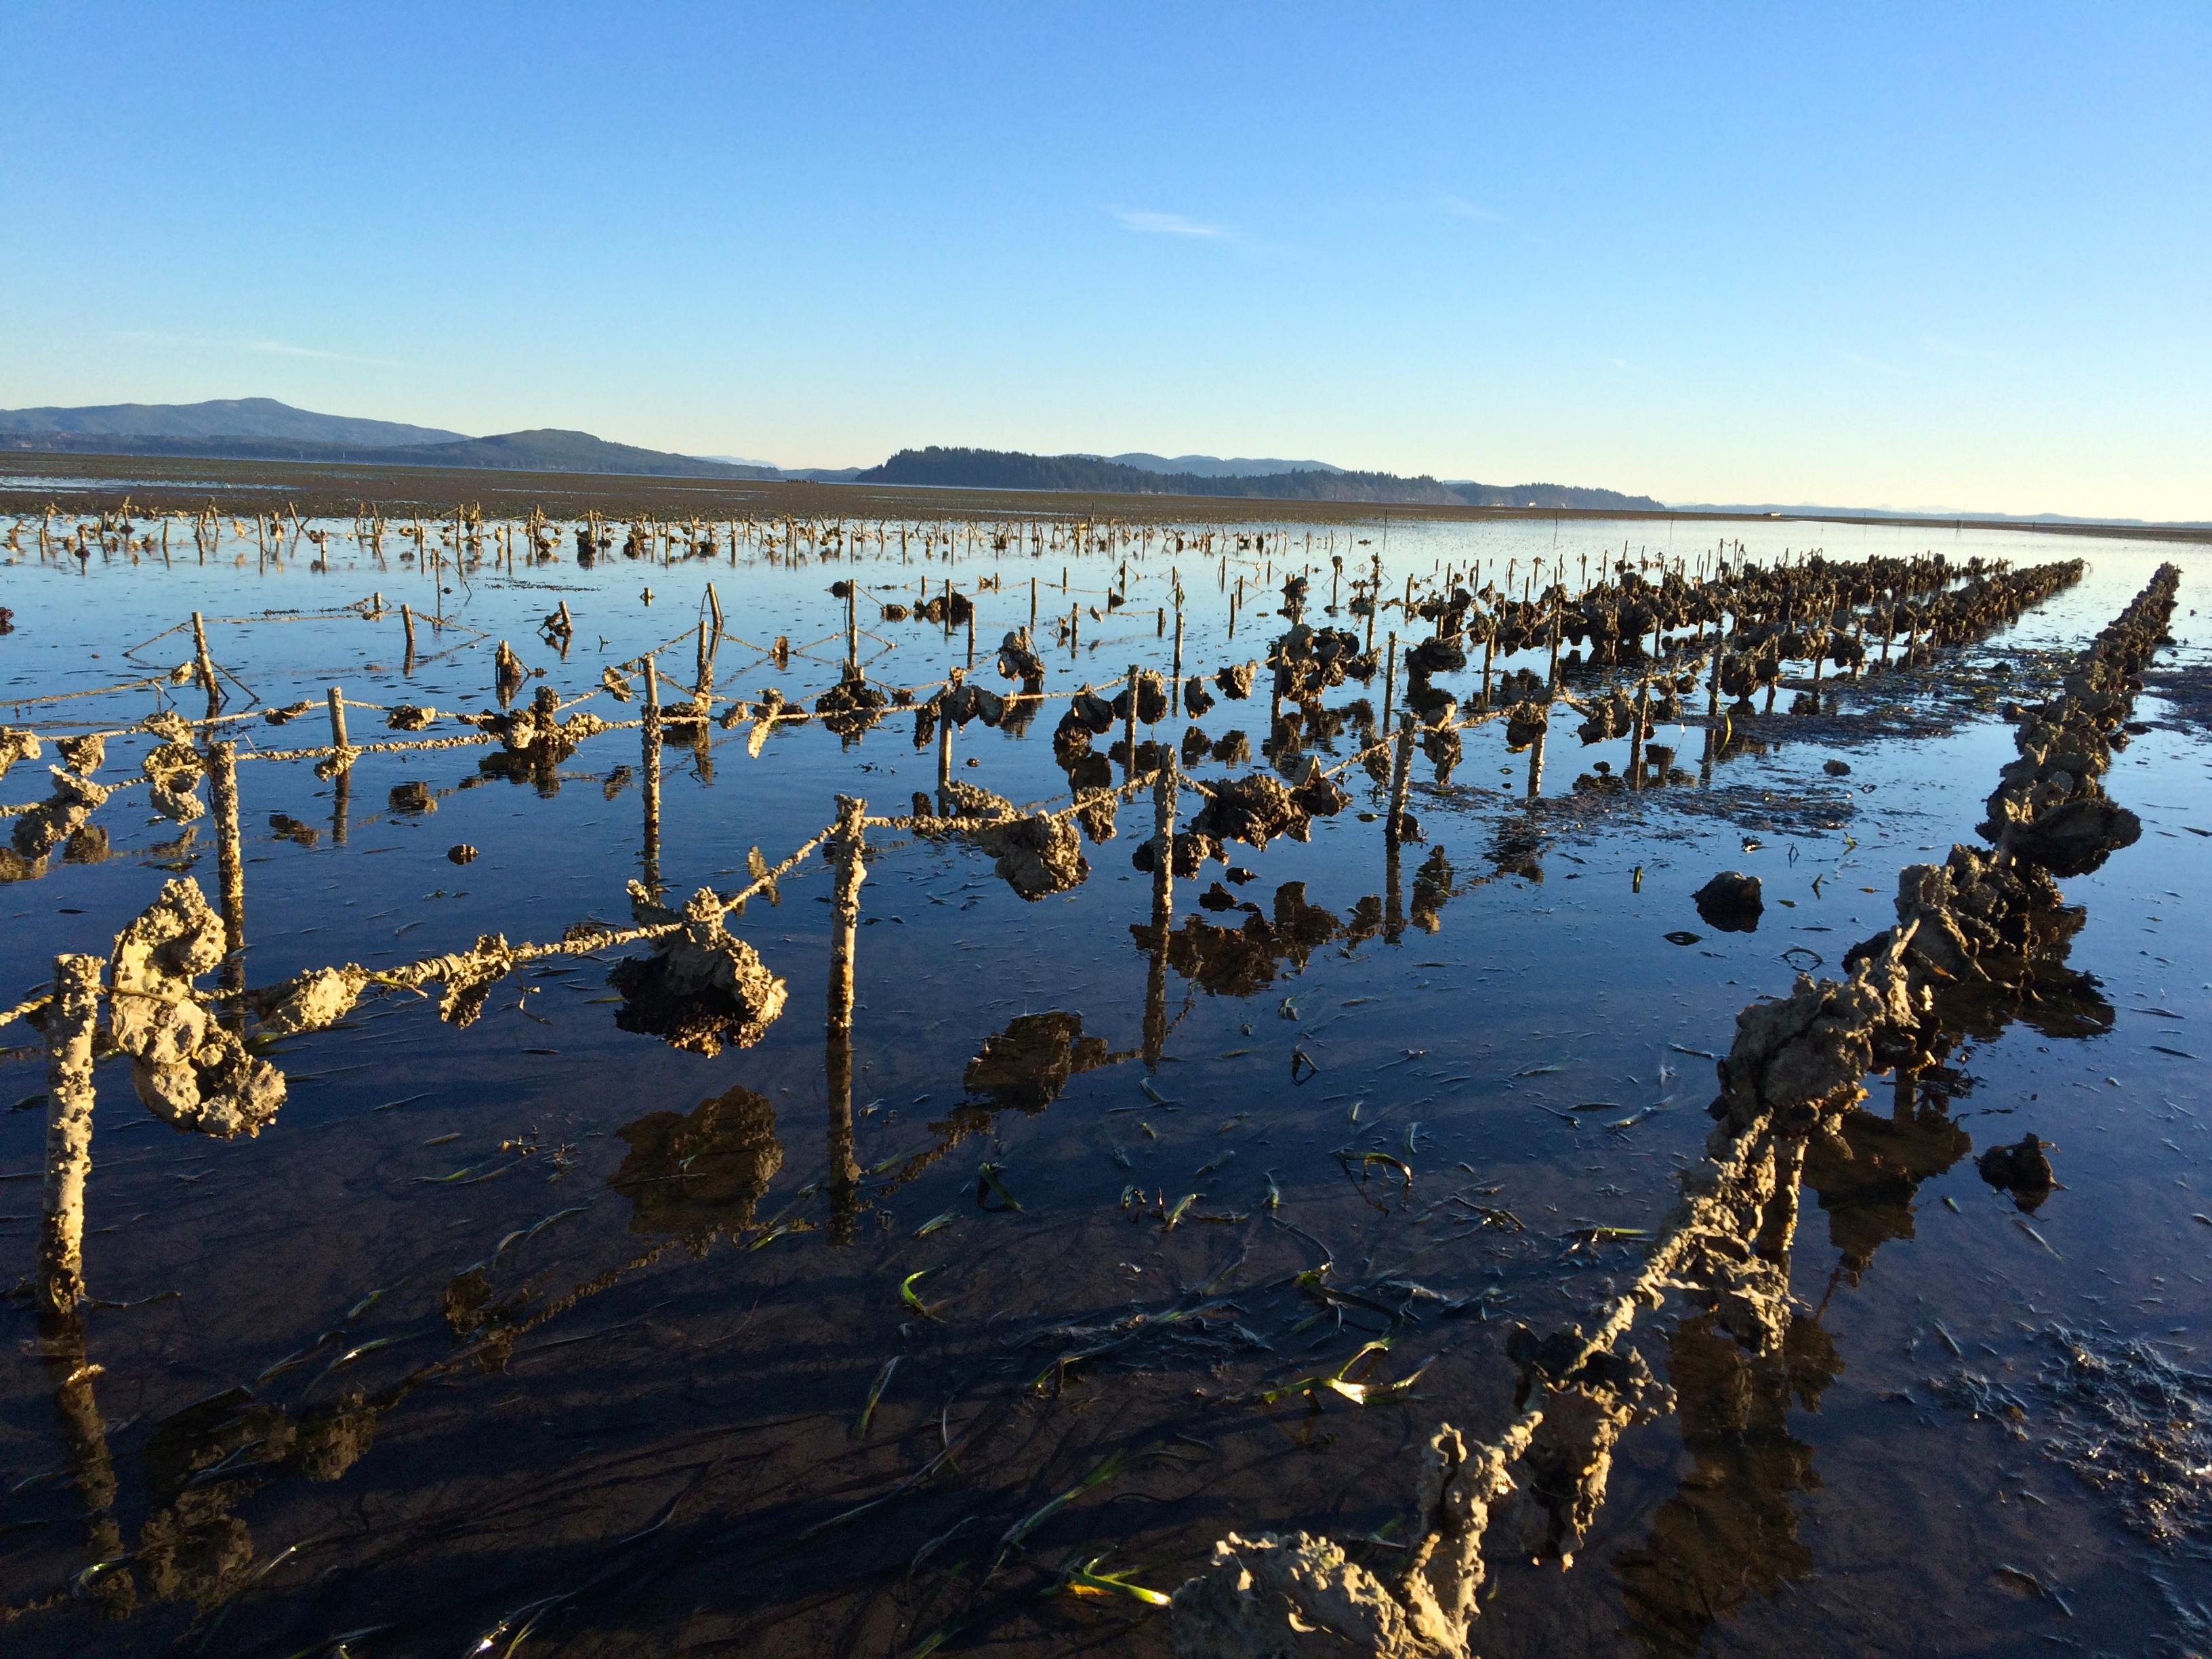 Oysters in Willapa Bay